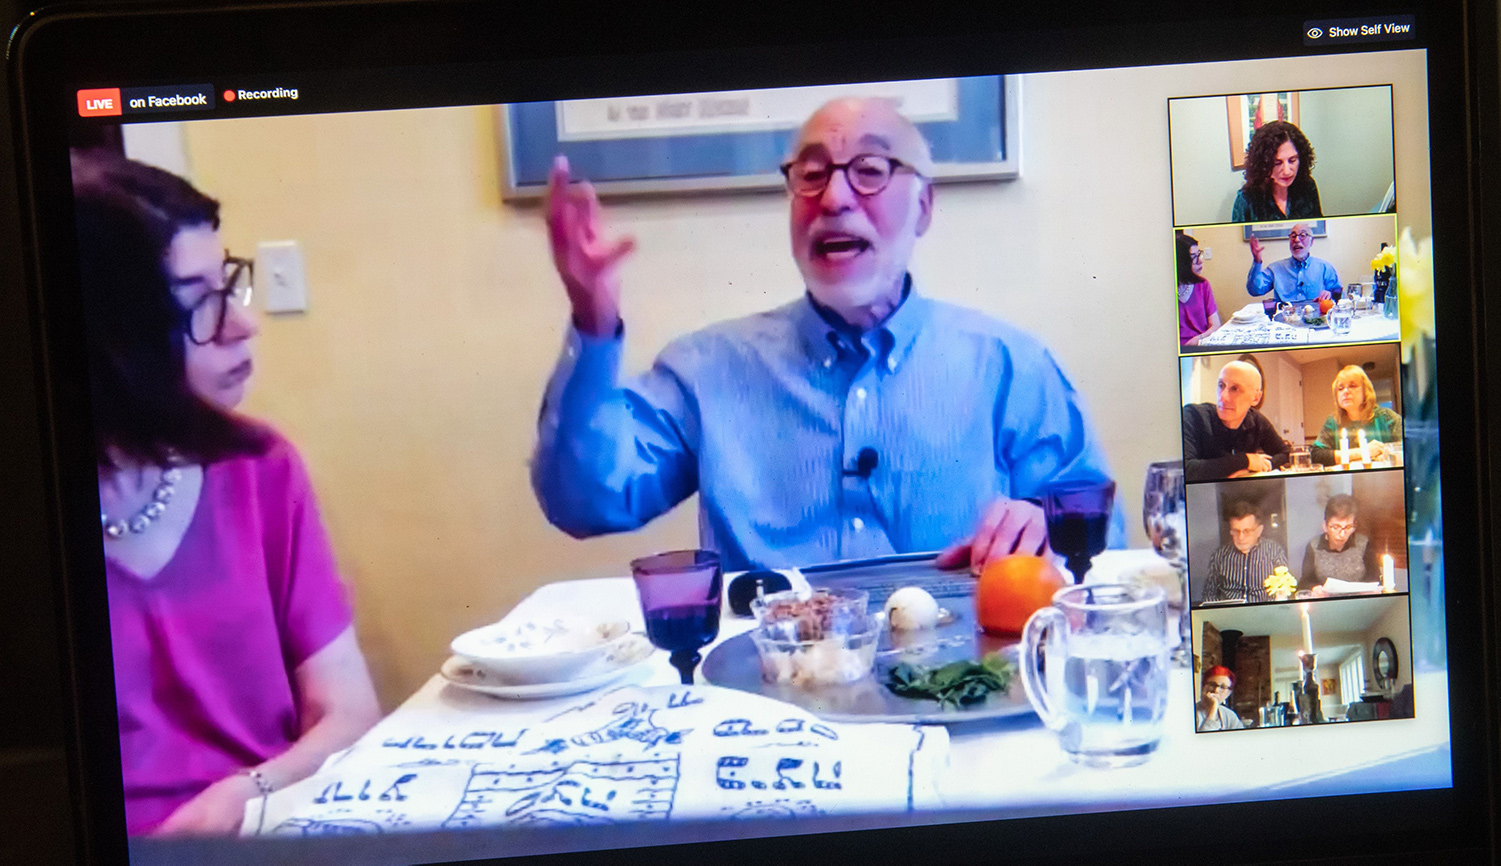 A rabbi hosts a virtual community seder on Zoom during the first night of Passover on April 8, 2020. SAUL LOEB/AFP via Getty Images.